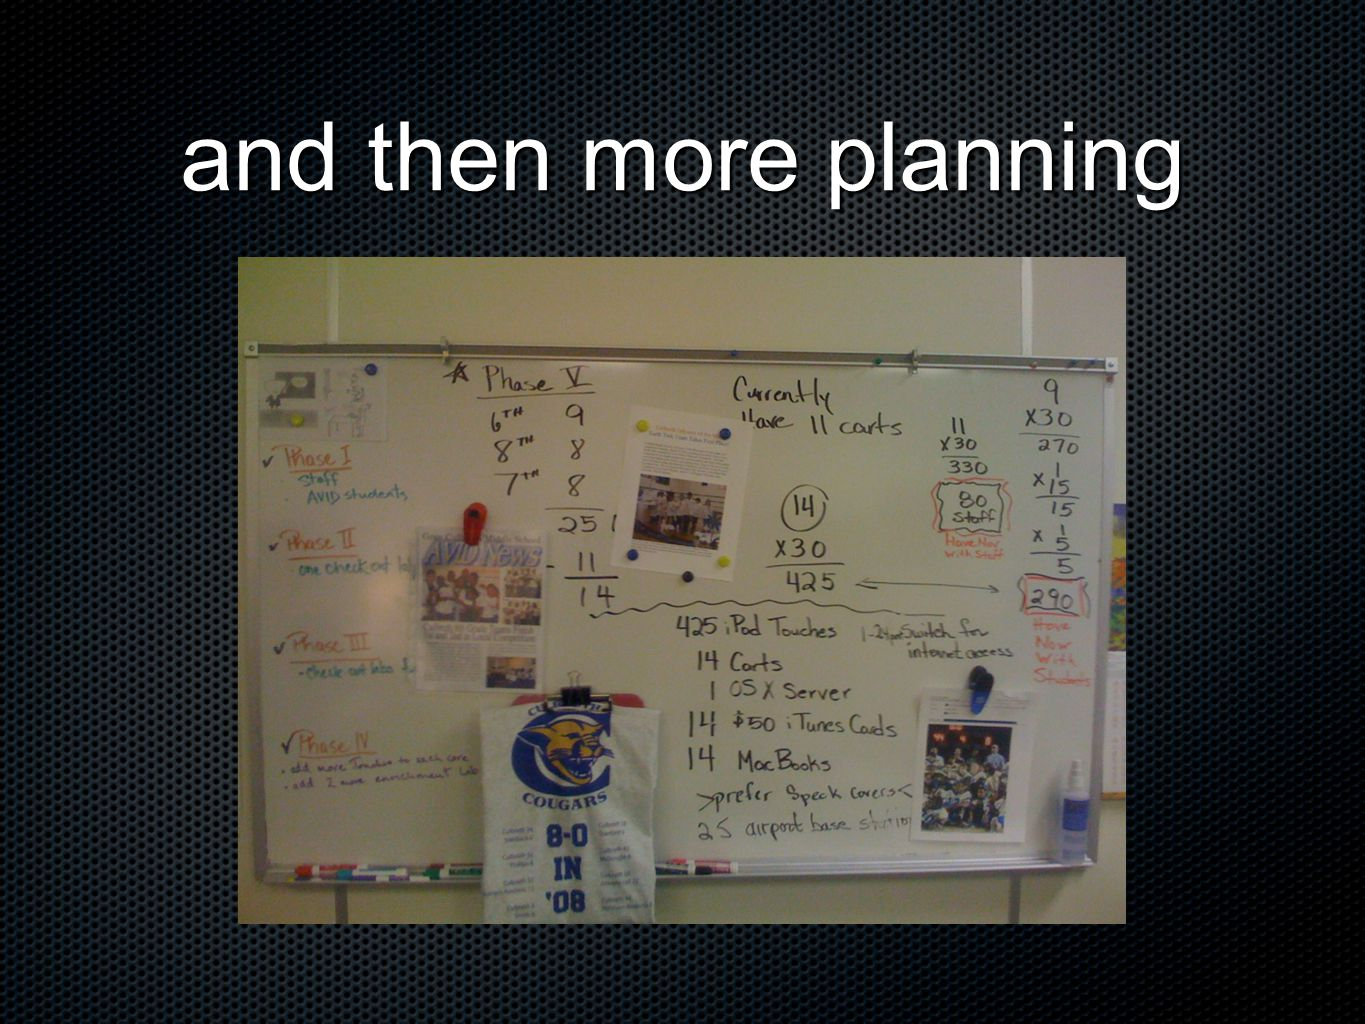 and then more planning